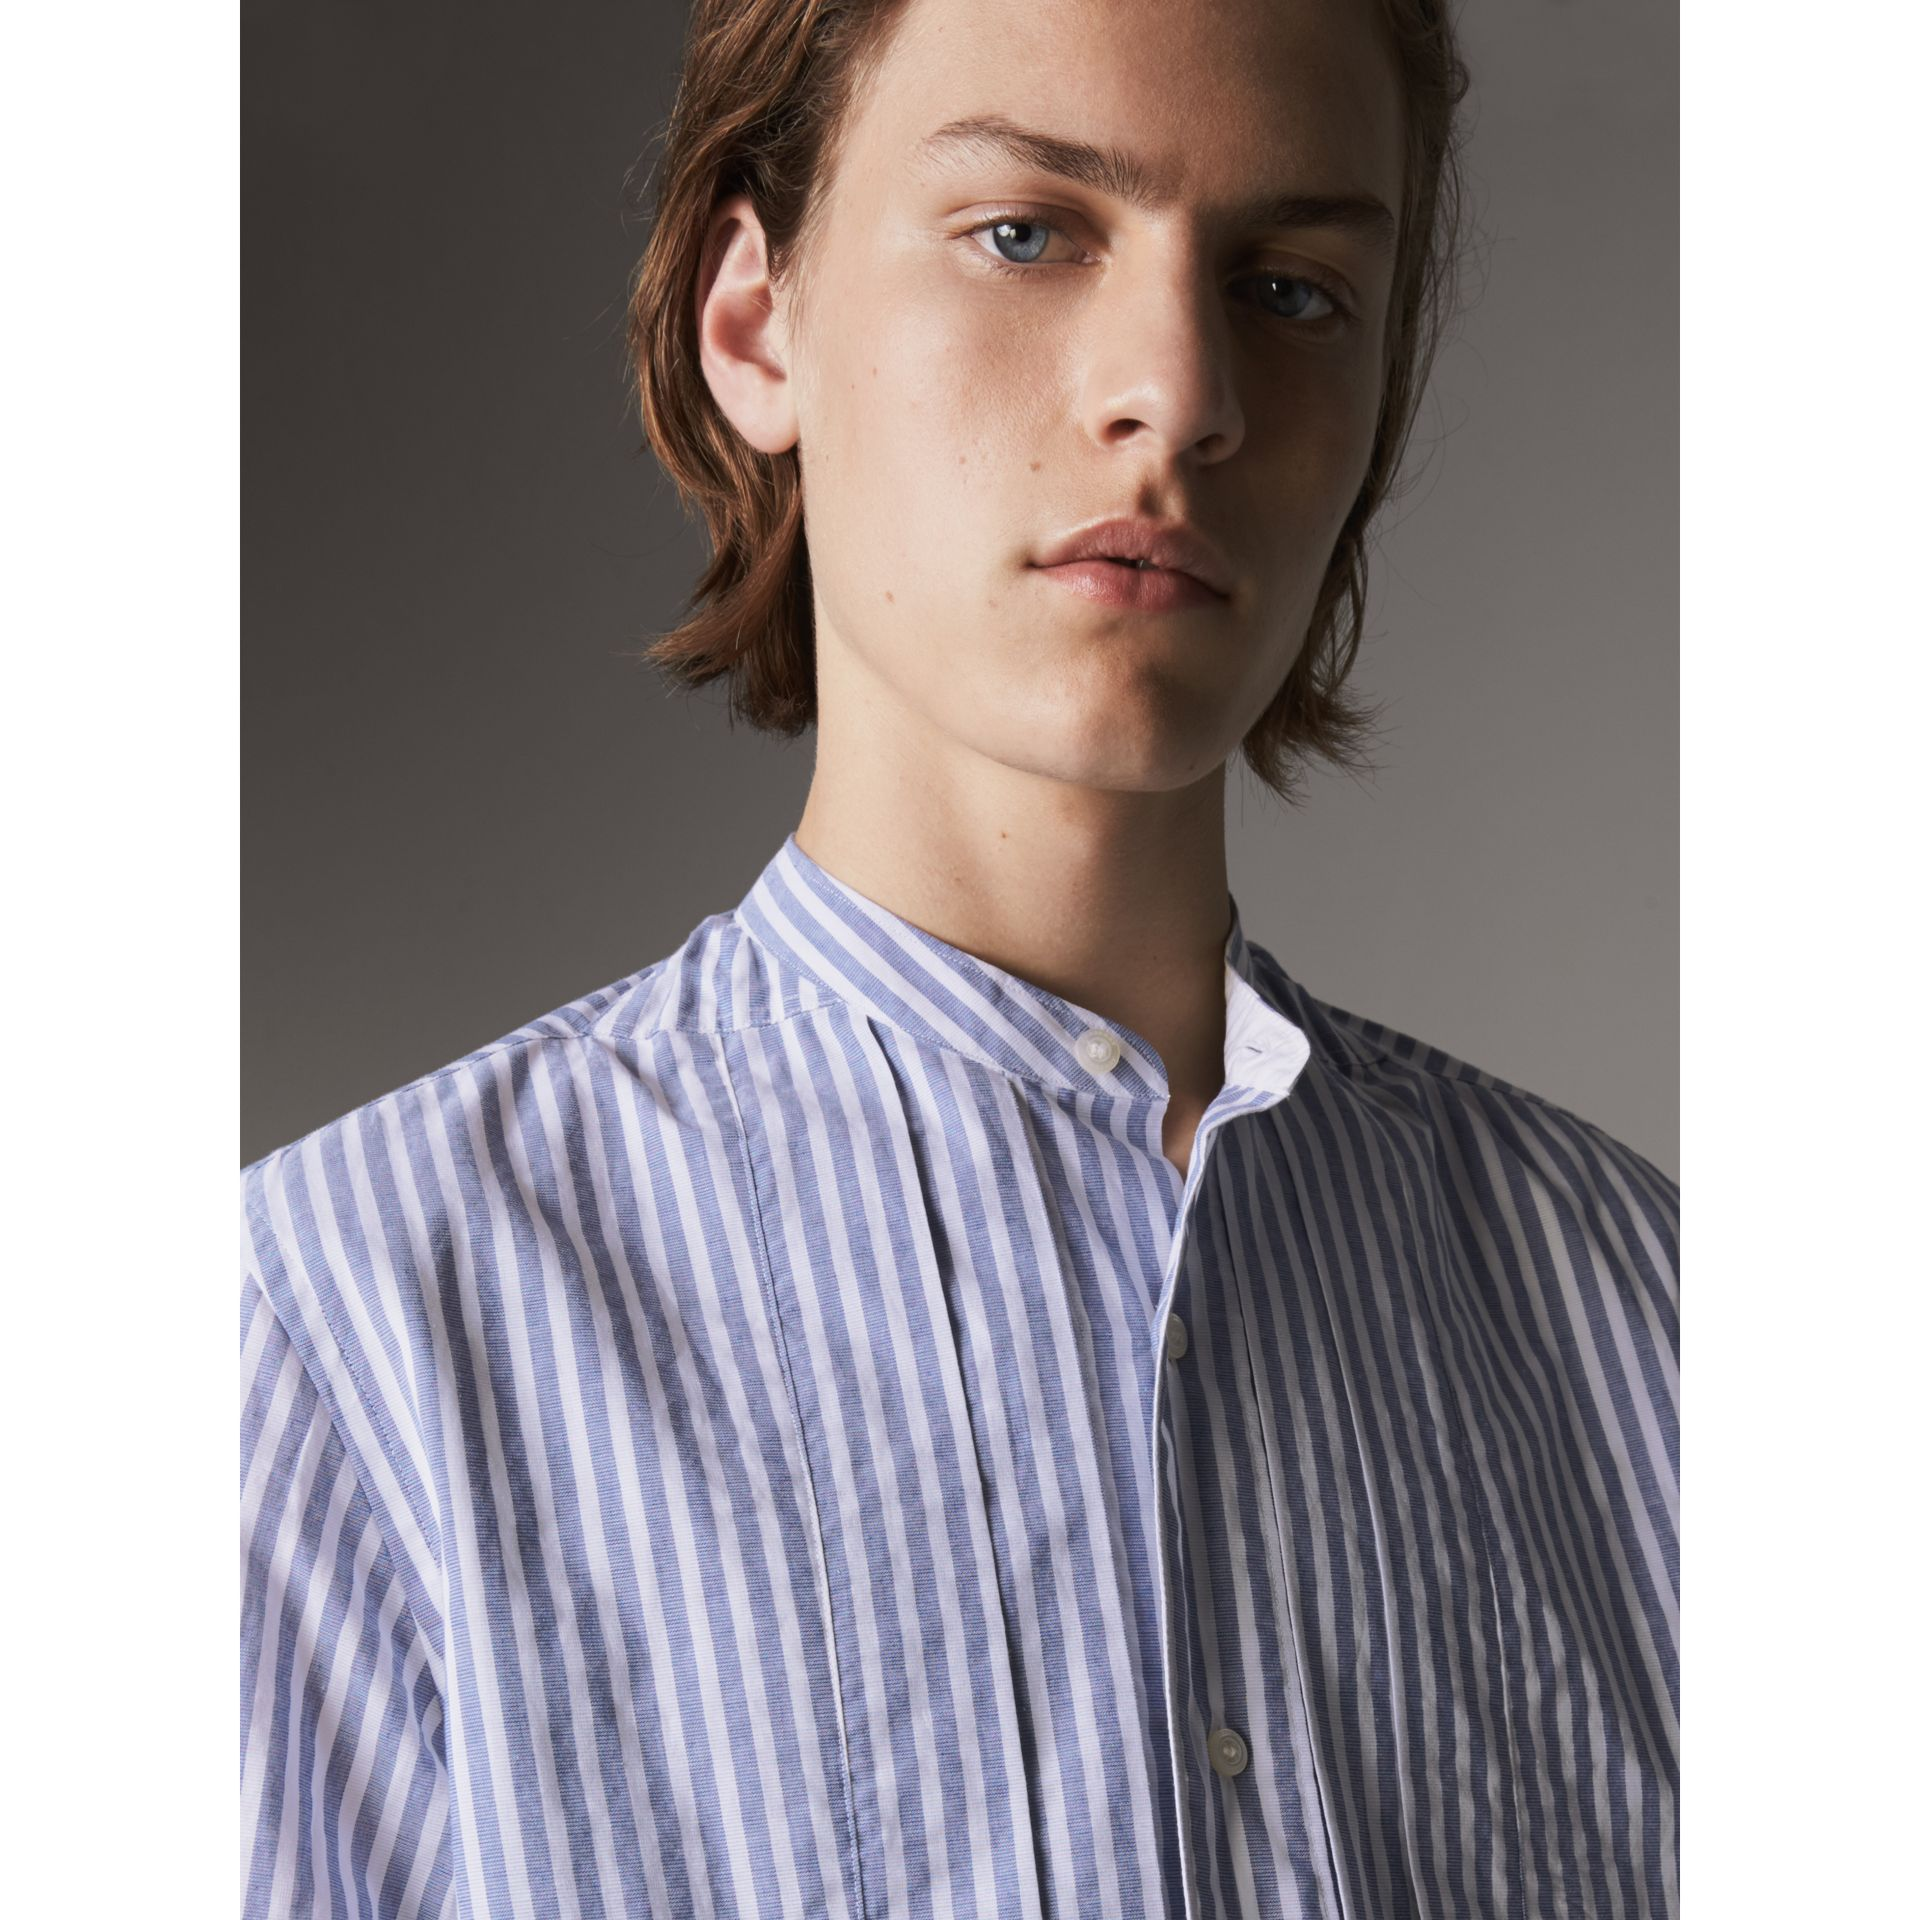 Unisex Pleated Bib Striped Cotton Shirt in Pale Blue/white - Men | Burberry - gallery image 2